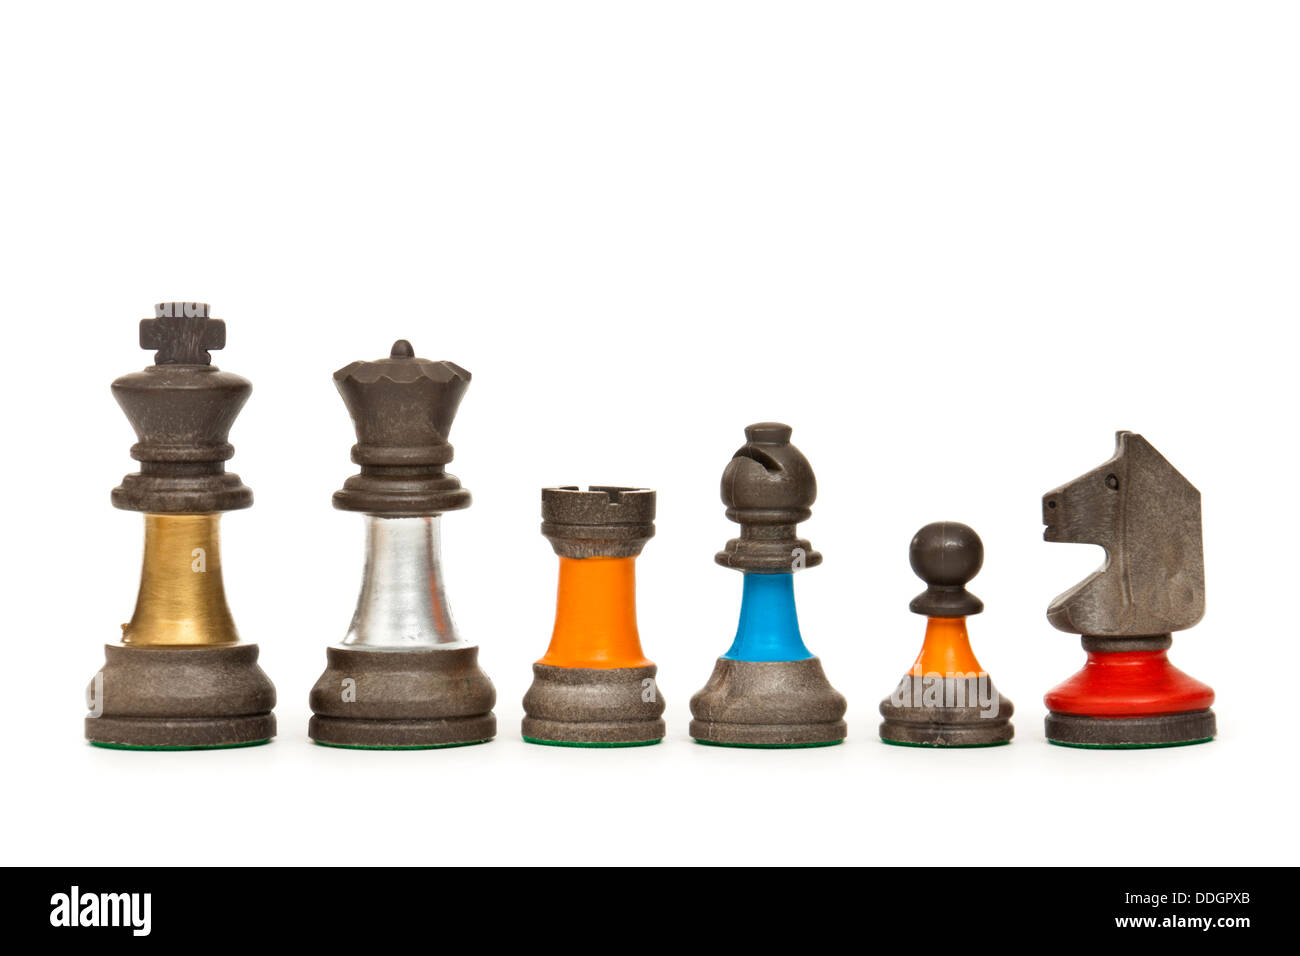 Heraldic chess pieces, including Pawn, Knight, Bishop, Rook, King and Queen - Stock Image